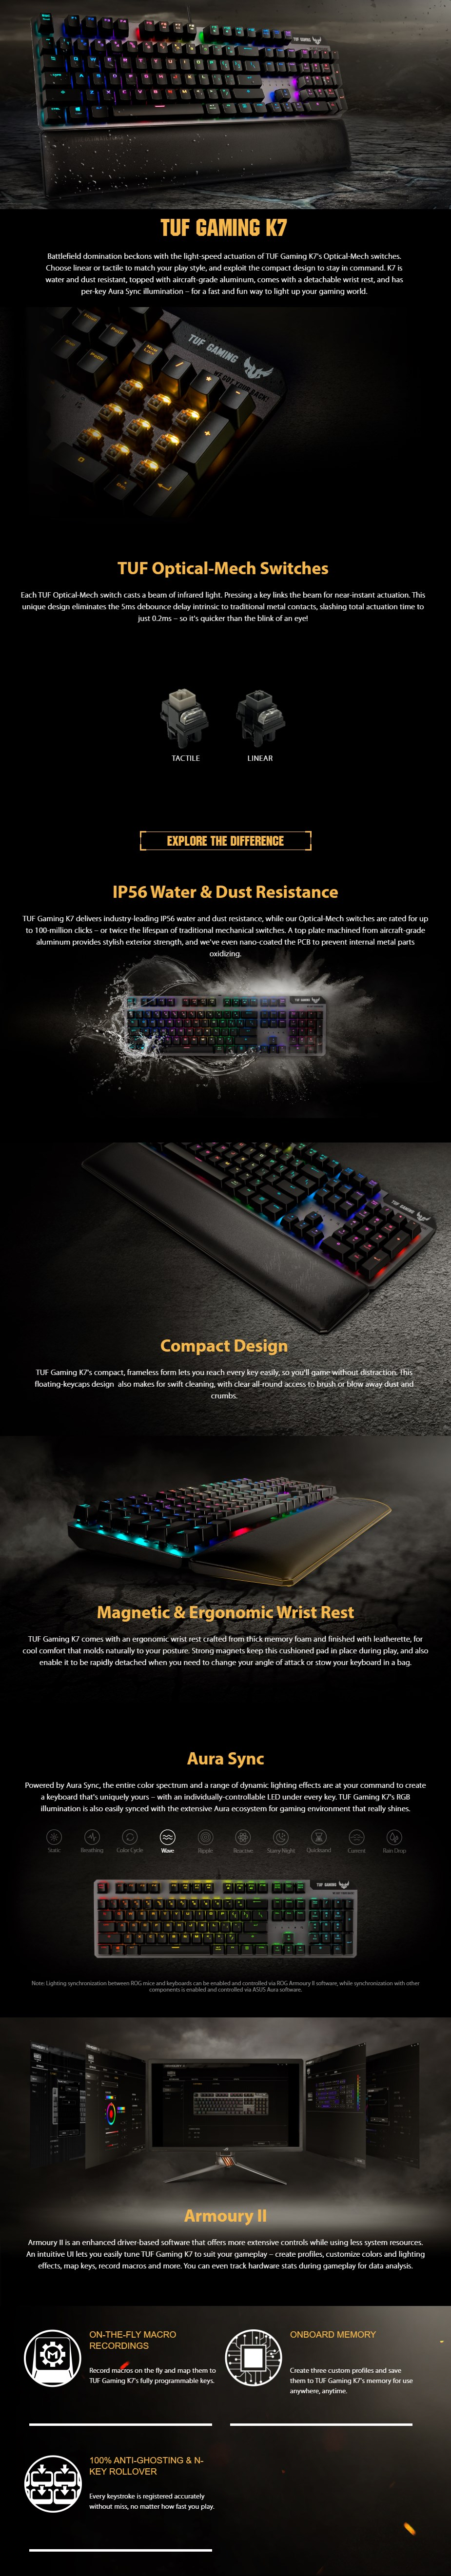 asus-tuf-gaming-k7-opticalmechanical-gaming-keyboard-linear-switches-ac28575-6-1-.jpg